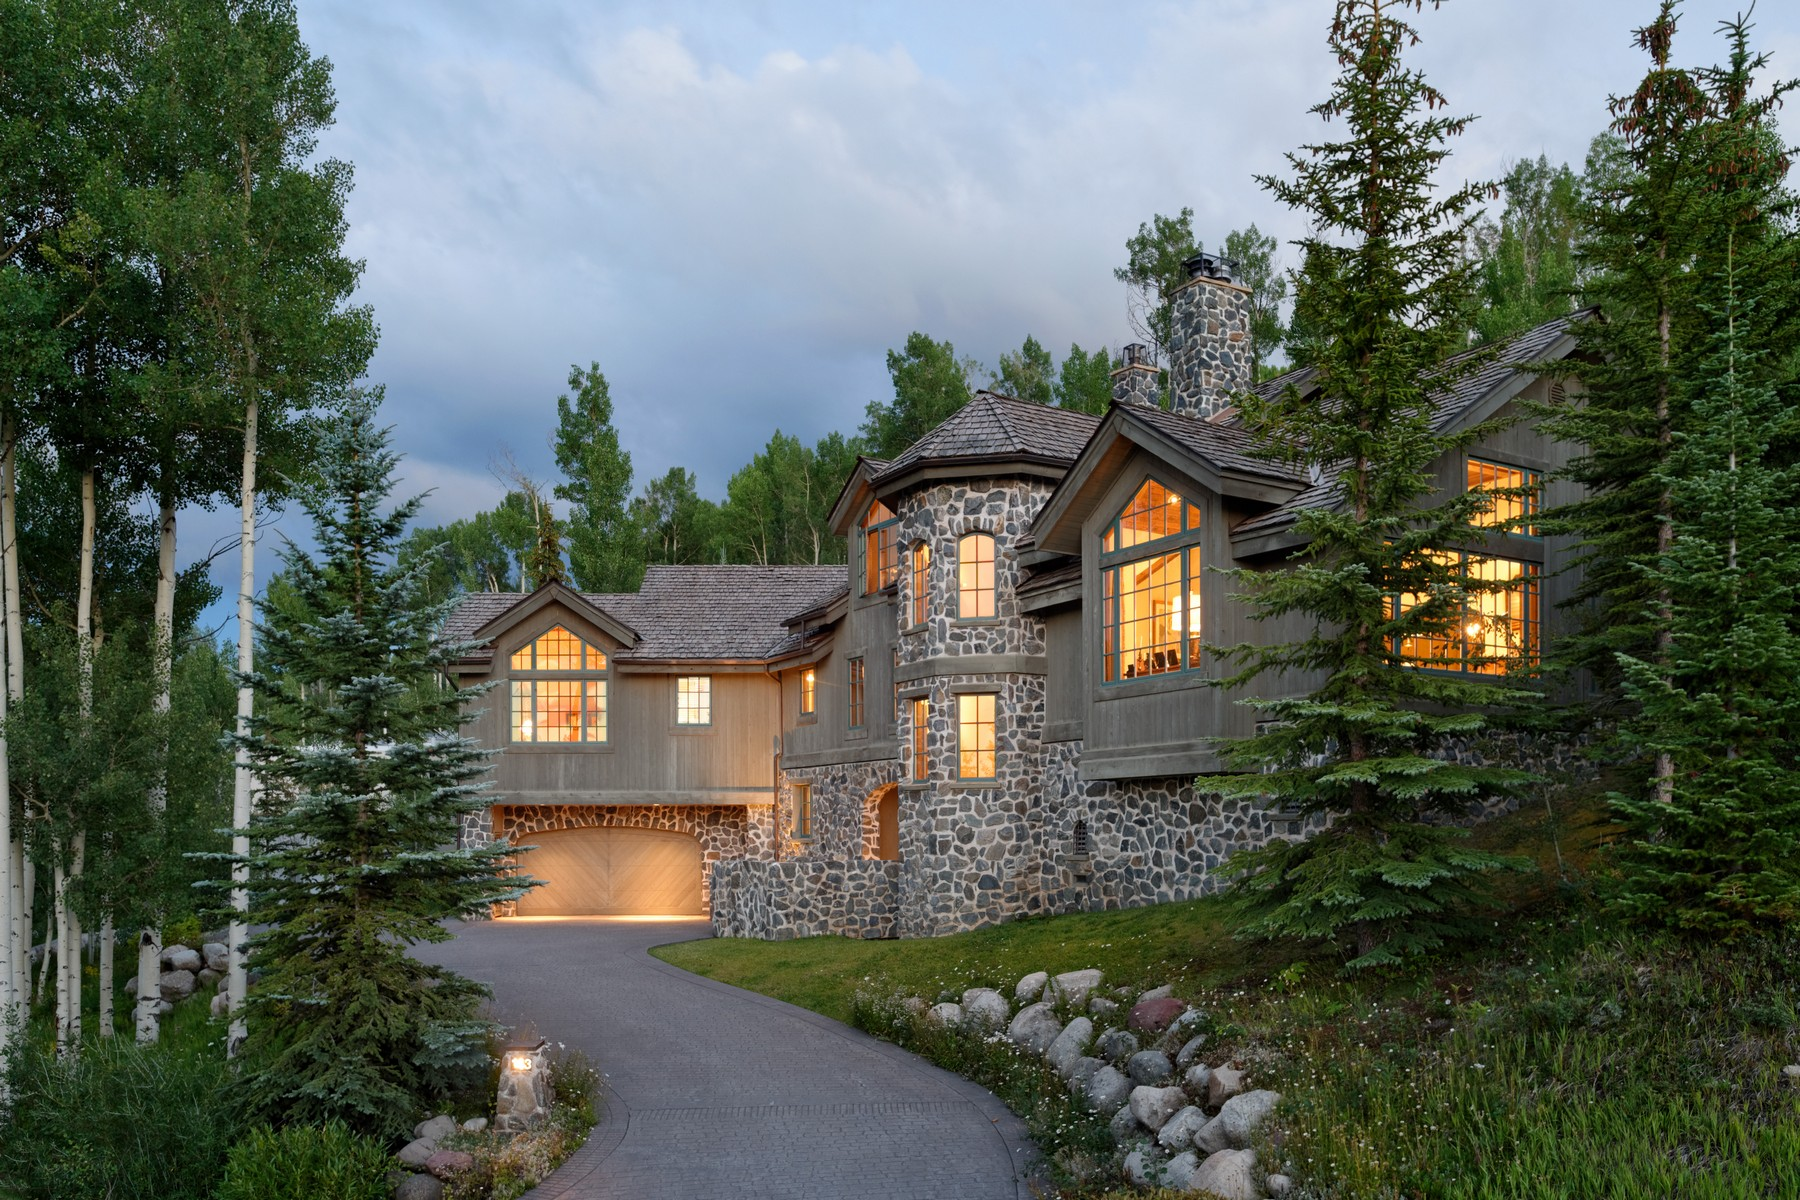 Single Family Home for Rent at 143 Aspen Way Snowmass Village, Colorado, 81615 United States